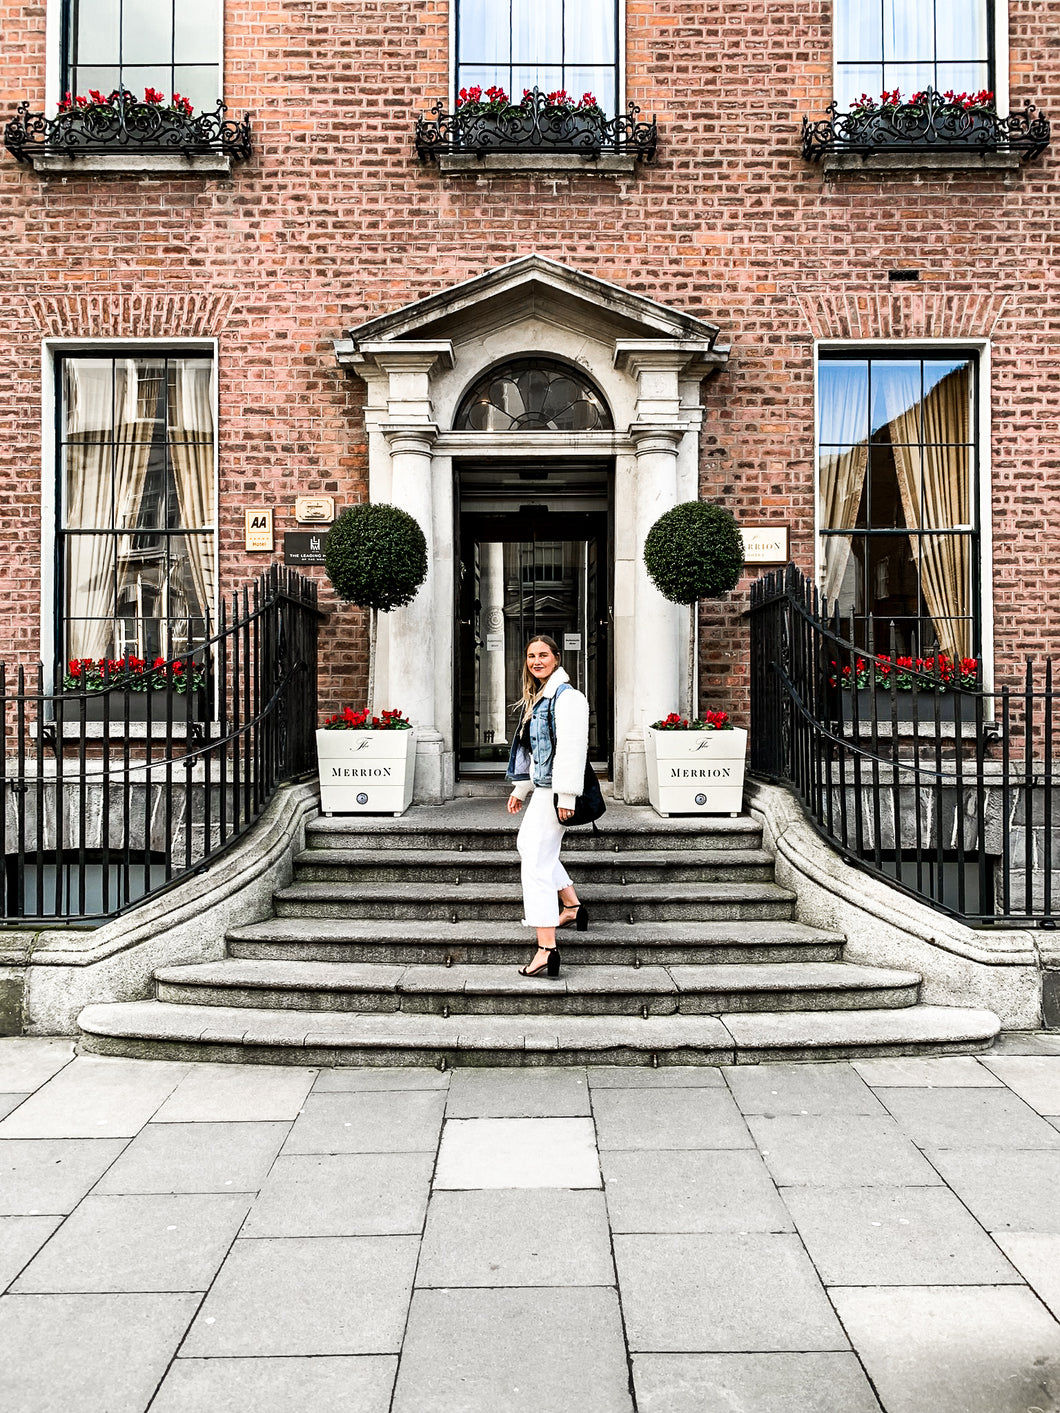 COMING SOON: Merrion Hotel, Dublin